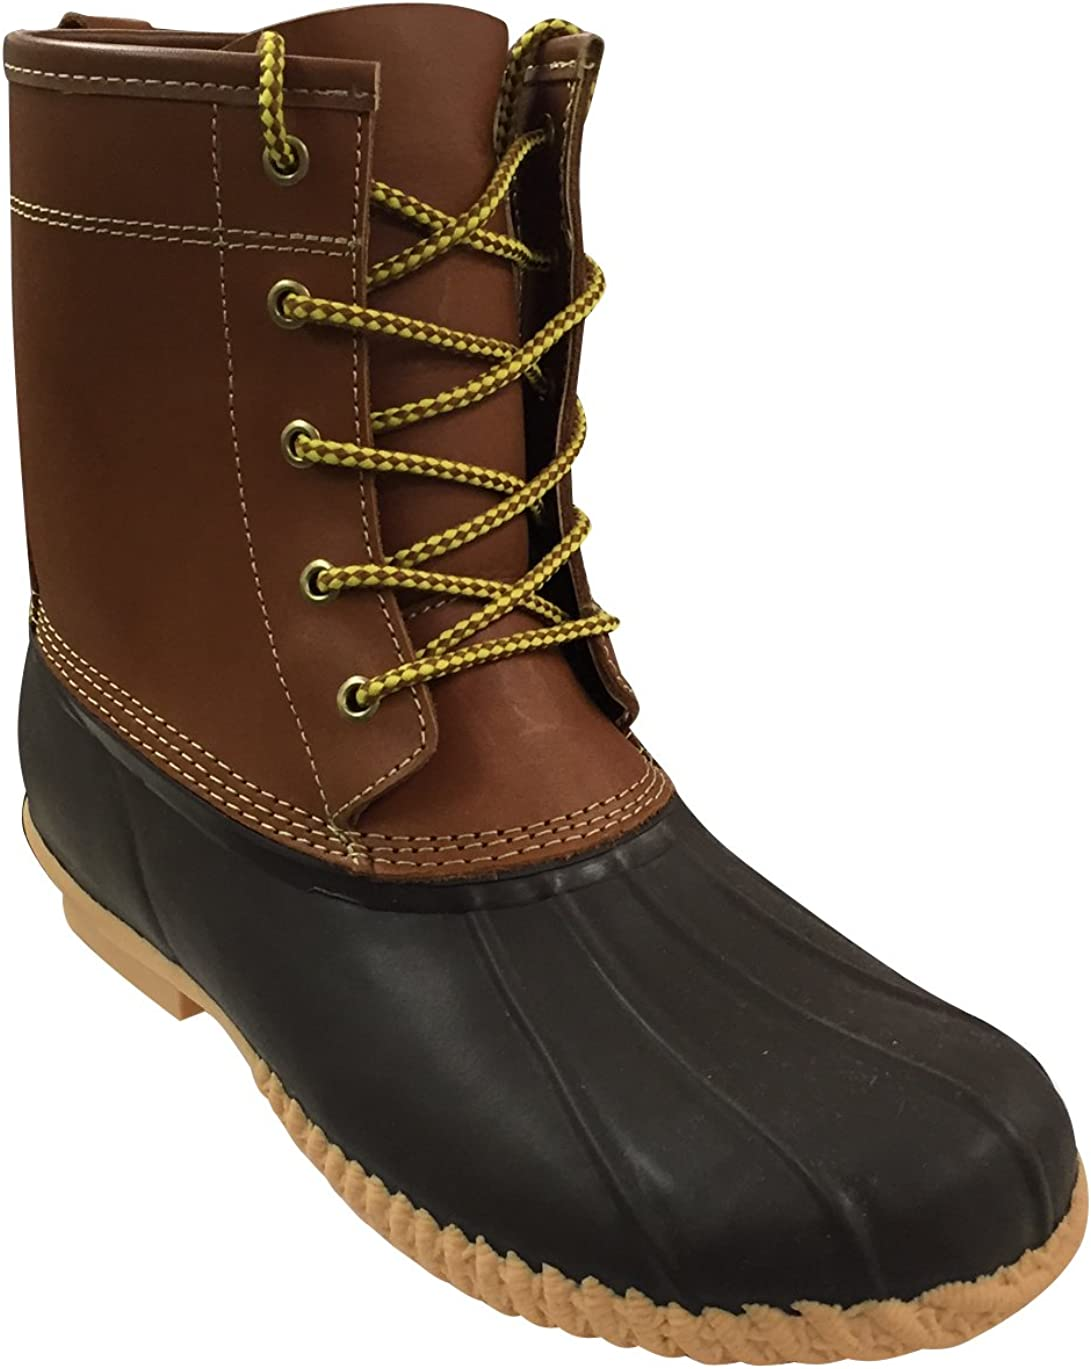 Sporto-Men's Duck Boot-Leather Shaft/Rubber Foot-Tan/Brown (11-M)